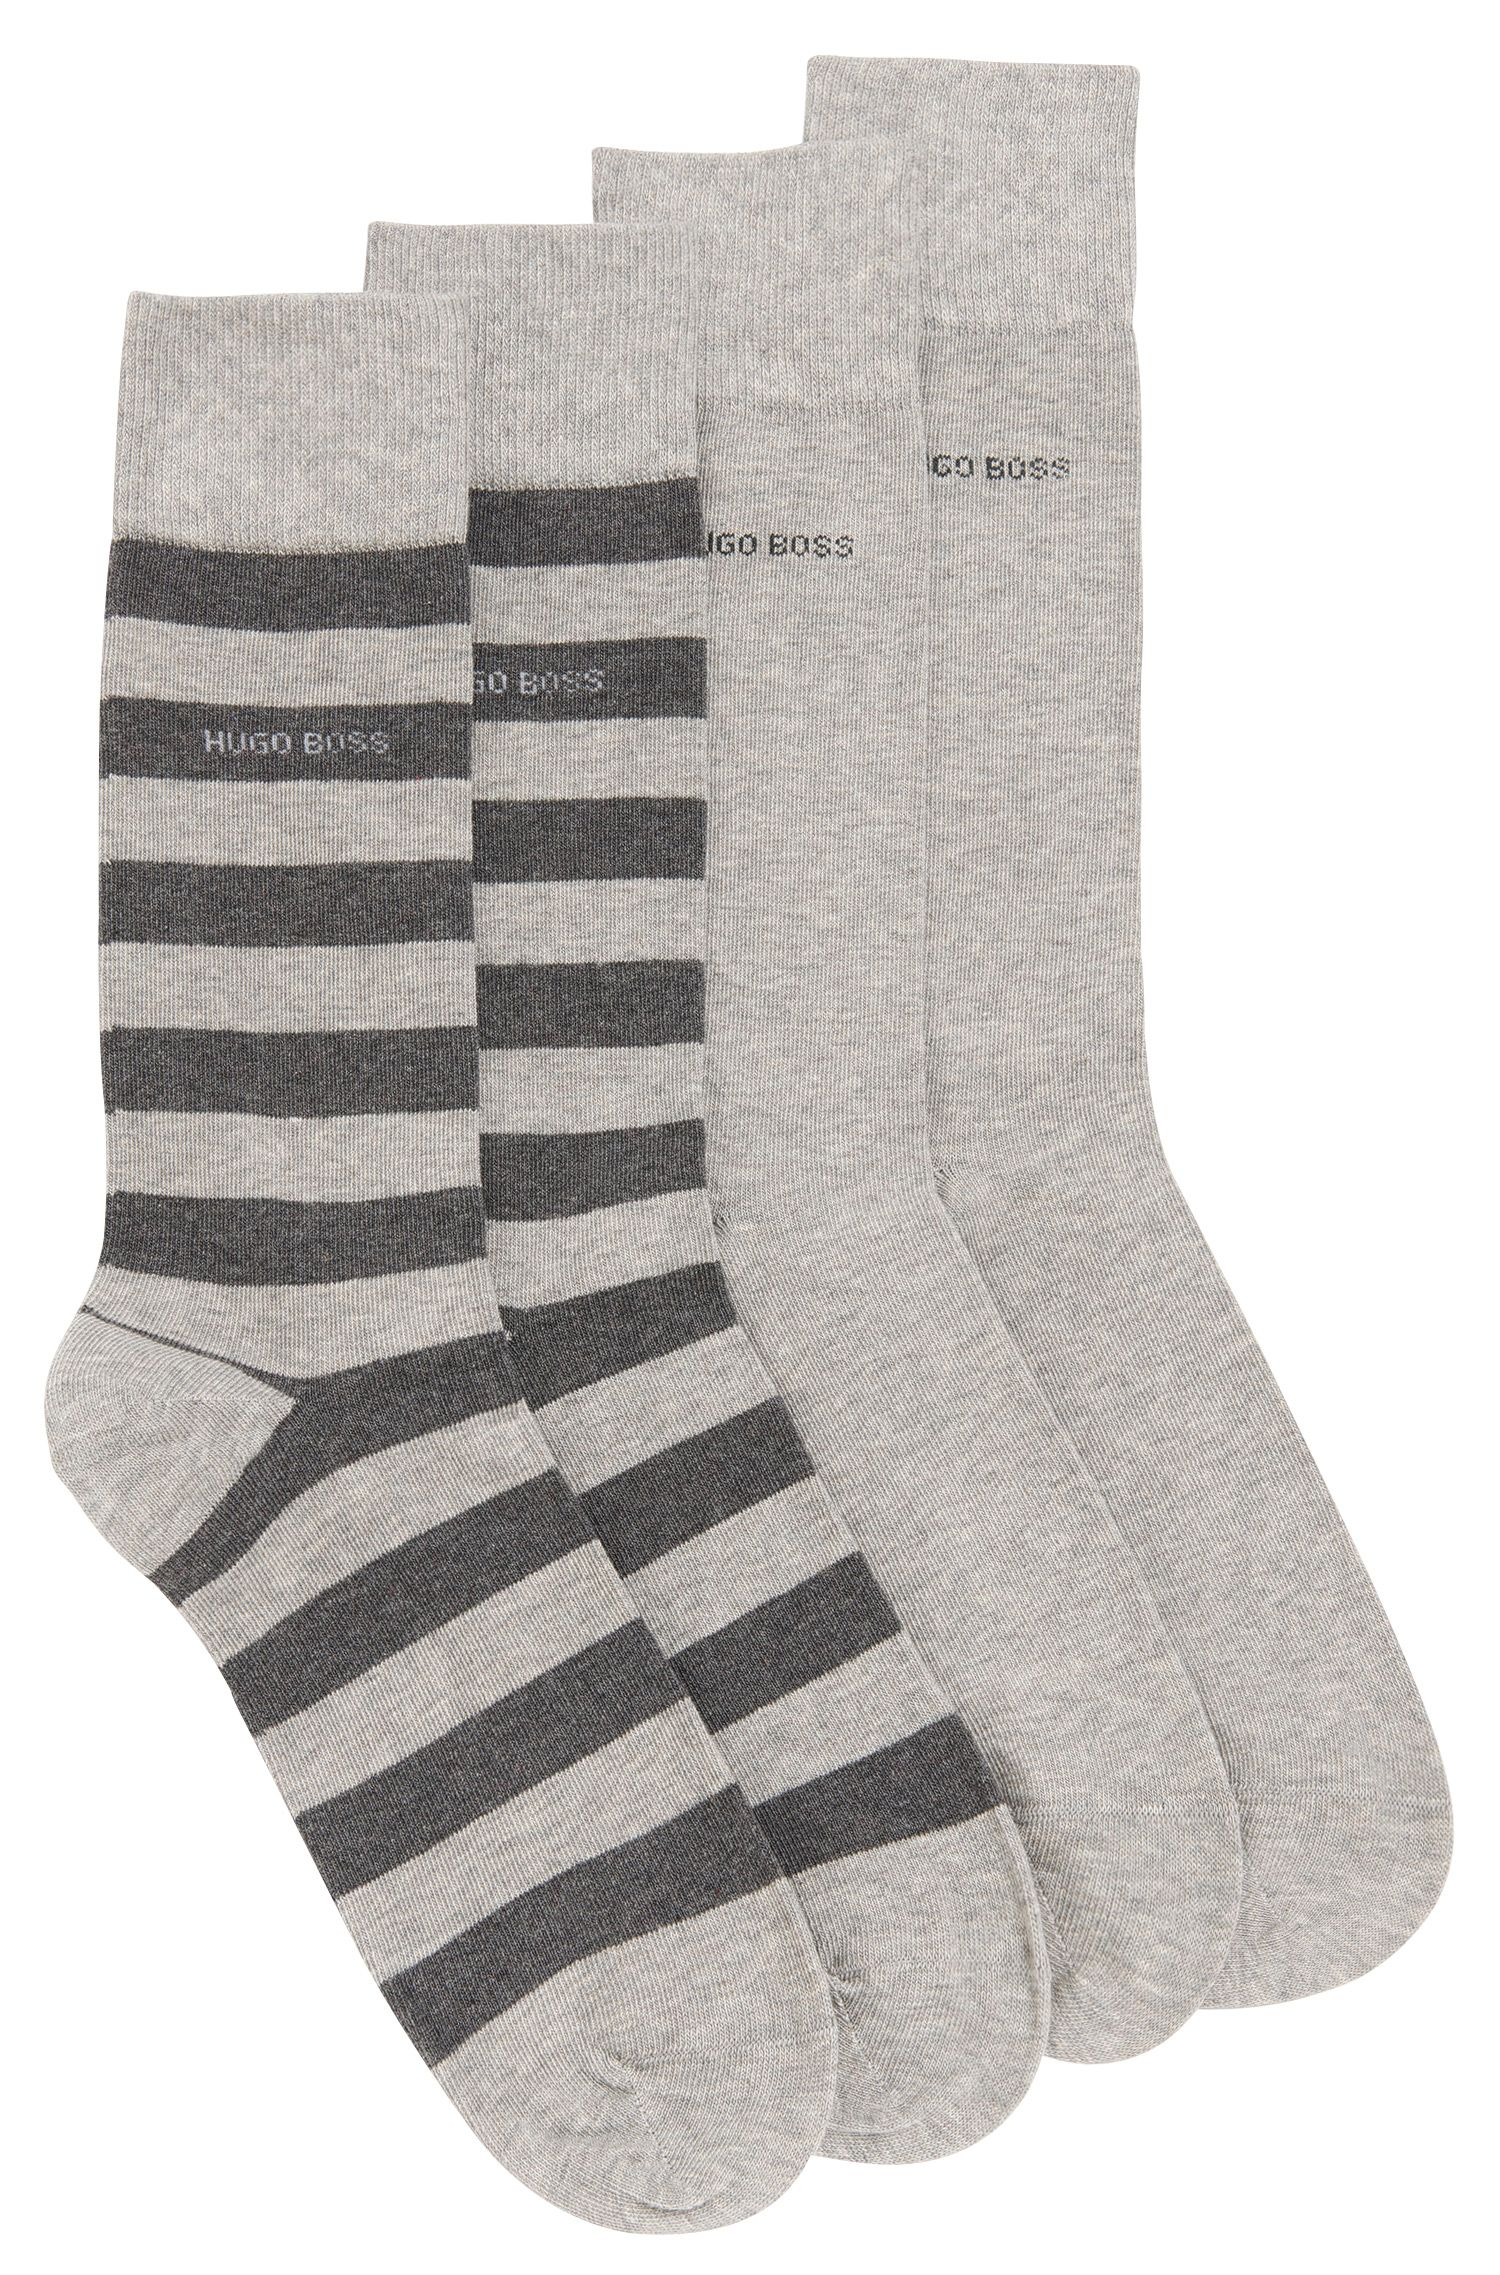 Two-pack of regular-length socks in combed cotton-blend , Silver